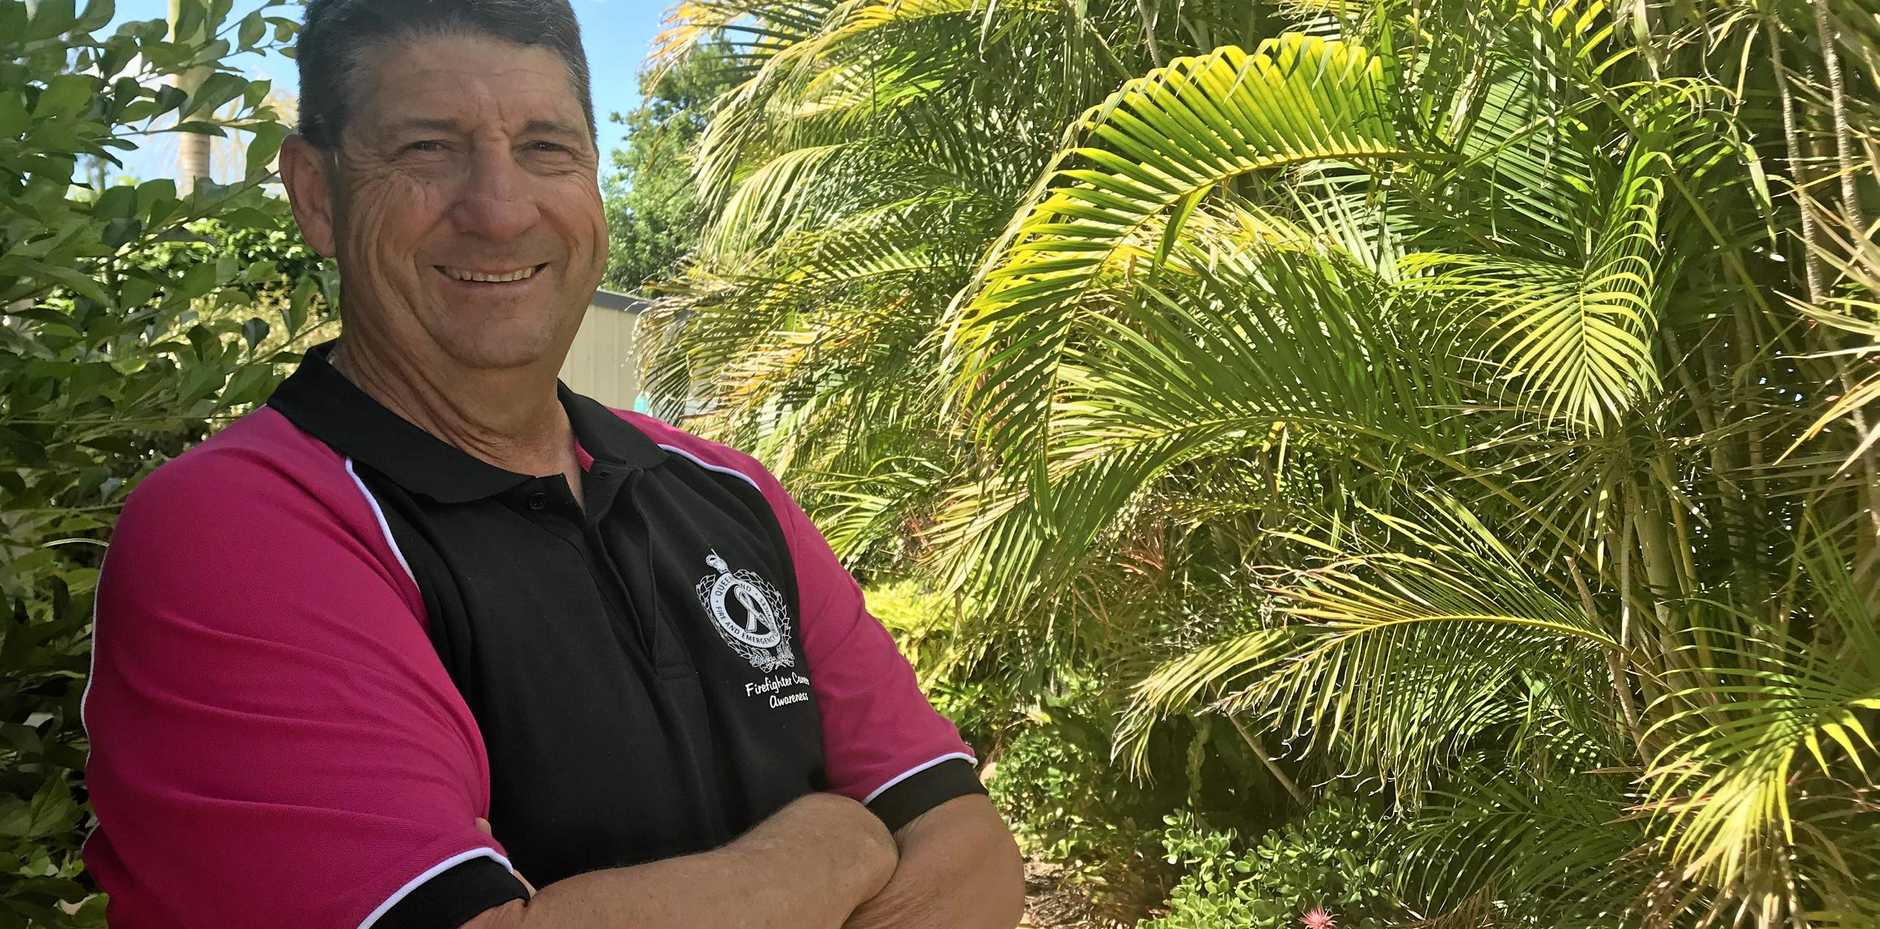 SAVING LIVES: Ipswich firefighter Bruce Beasley continues to raise money for the Leukaemia Foundation after his wife's medical scare.